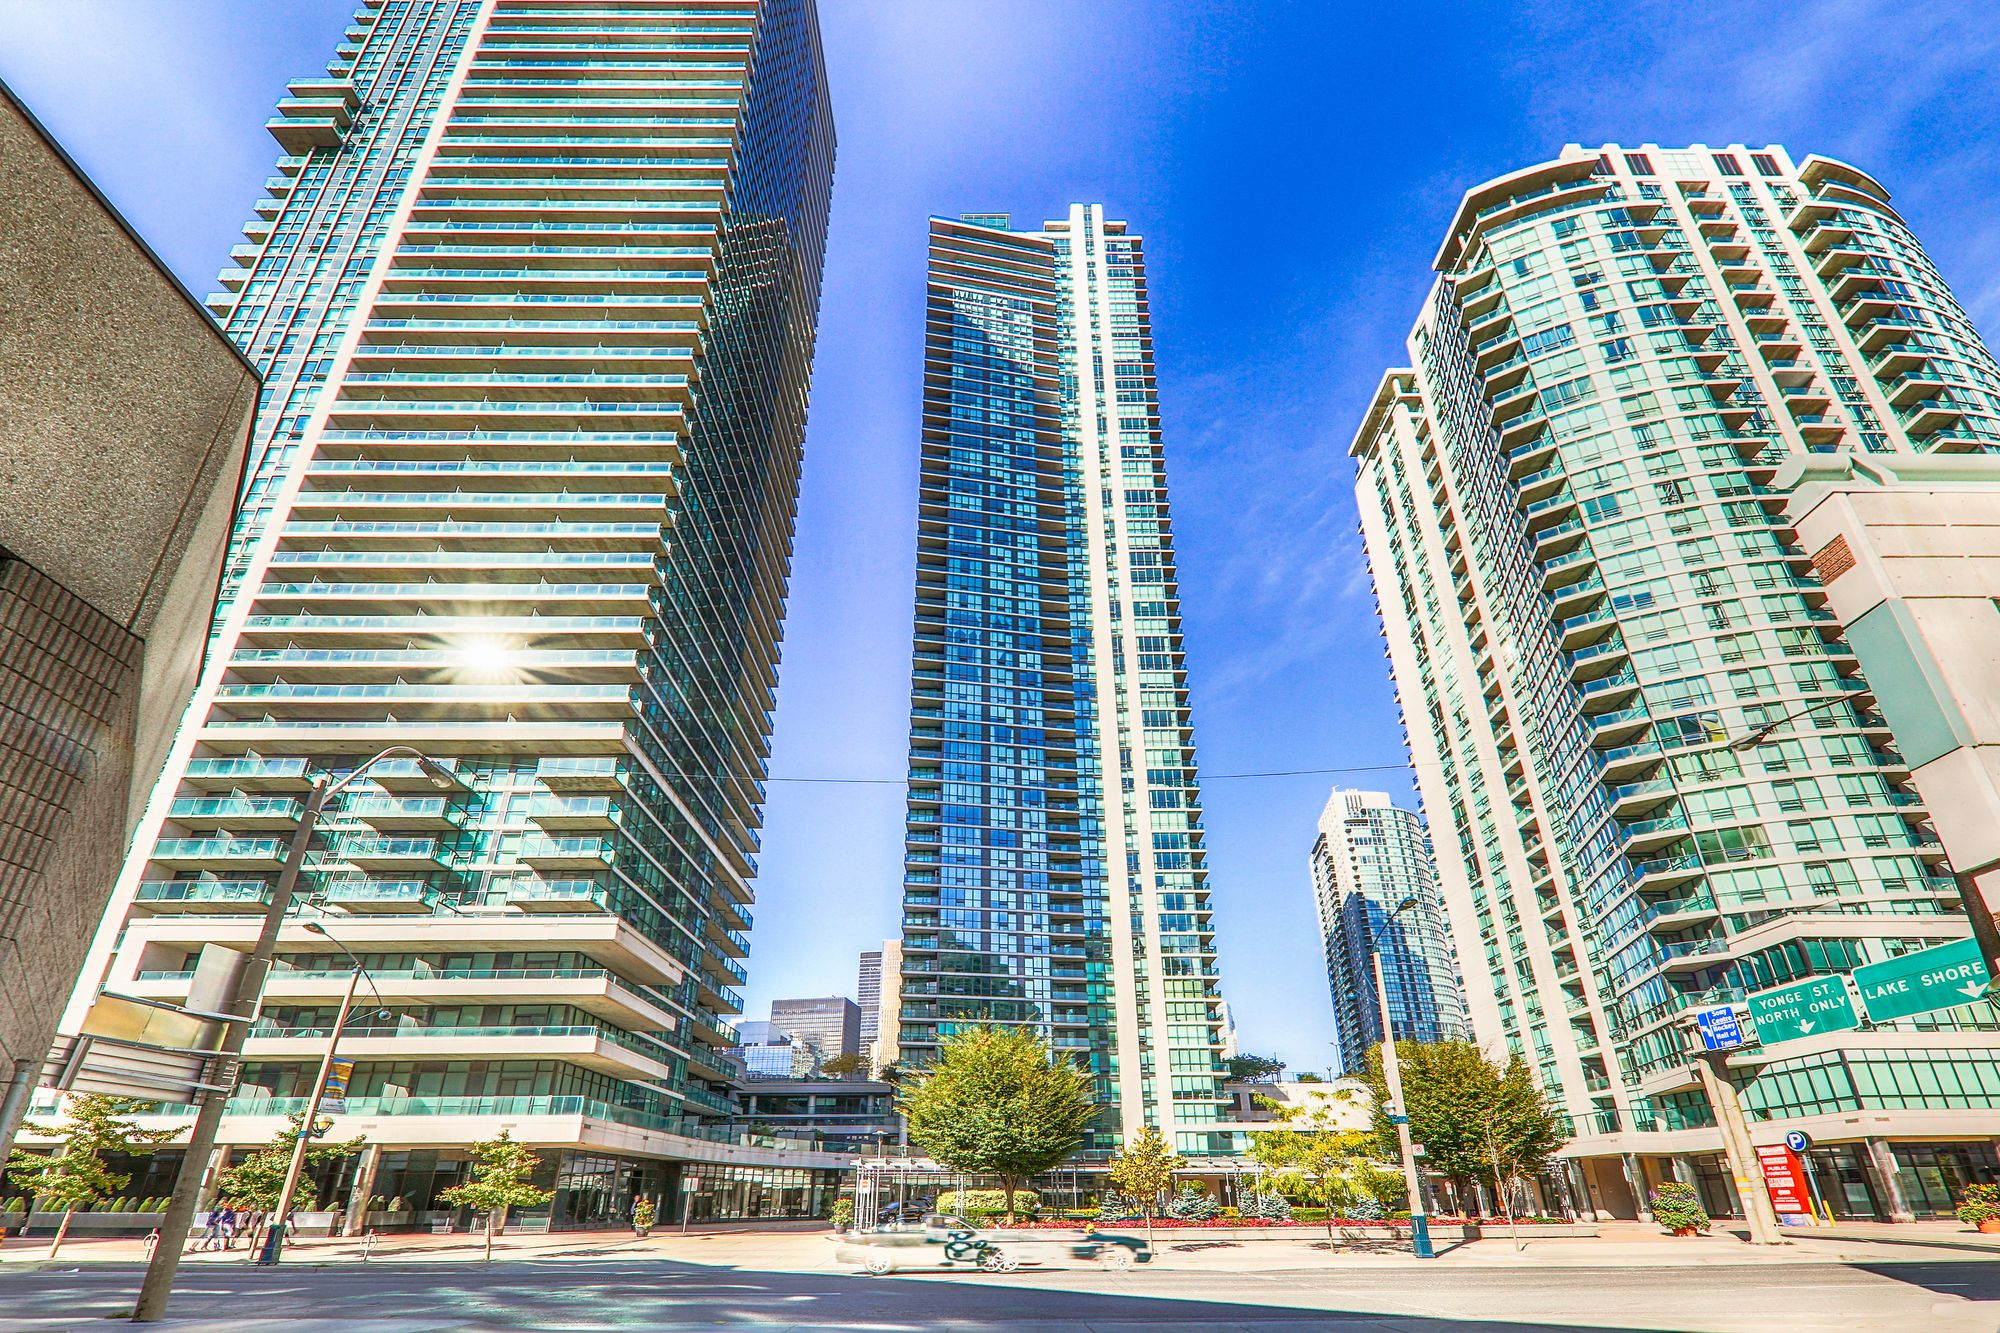 18 Harbour St. This condo at Success Tower is located in  Downtown, Toronto - image #2 of 5 by Strata.ca